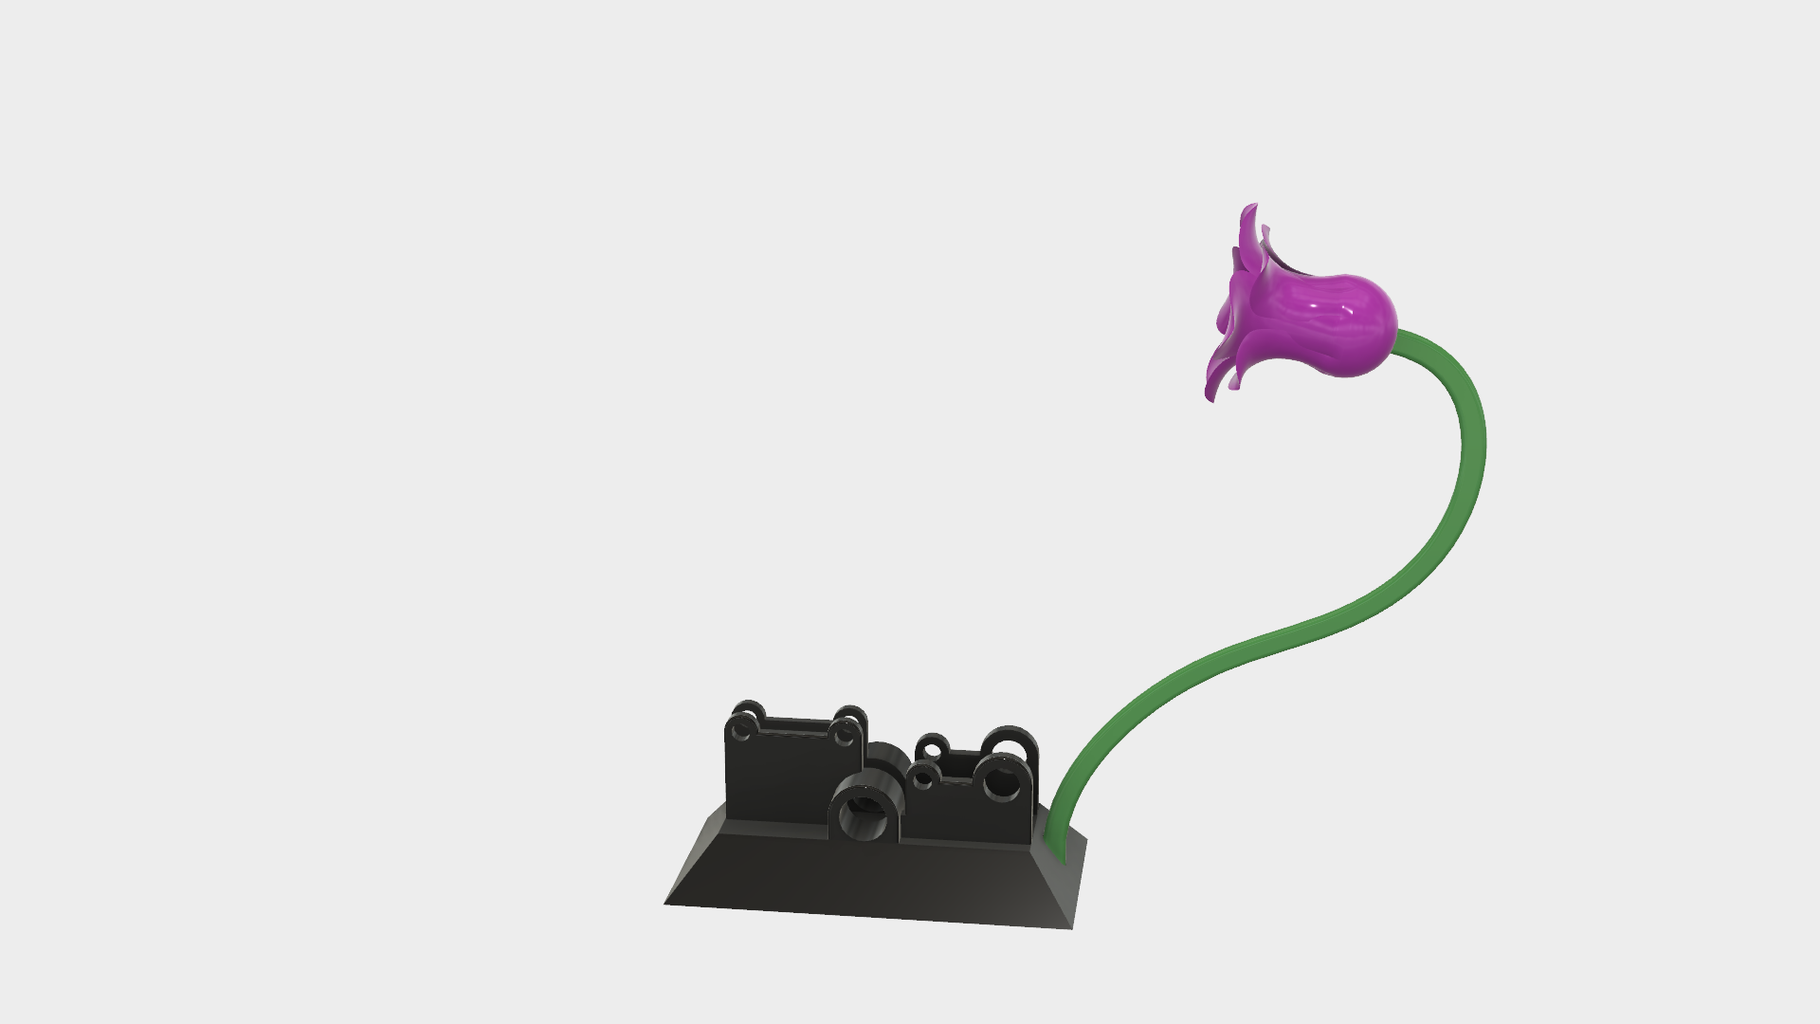 Attach the Stem and Flower to the Base